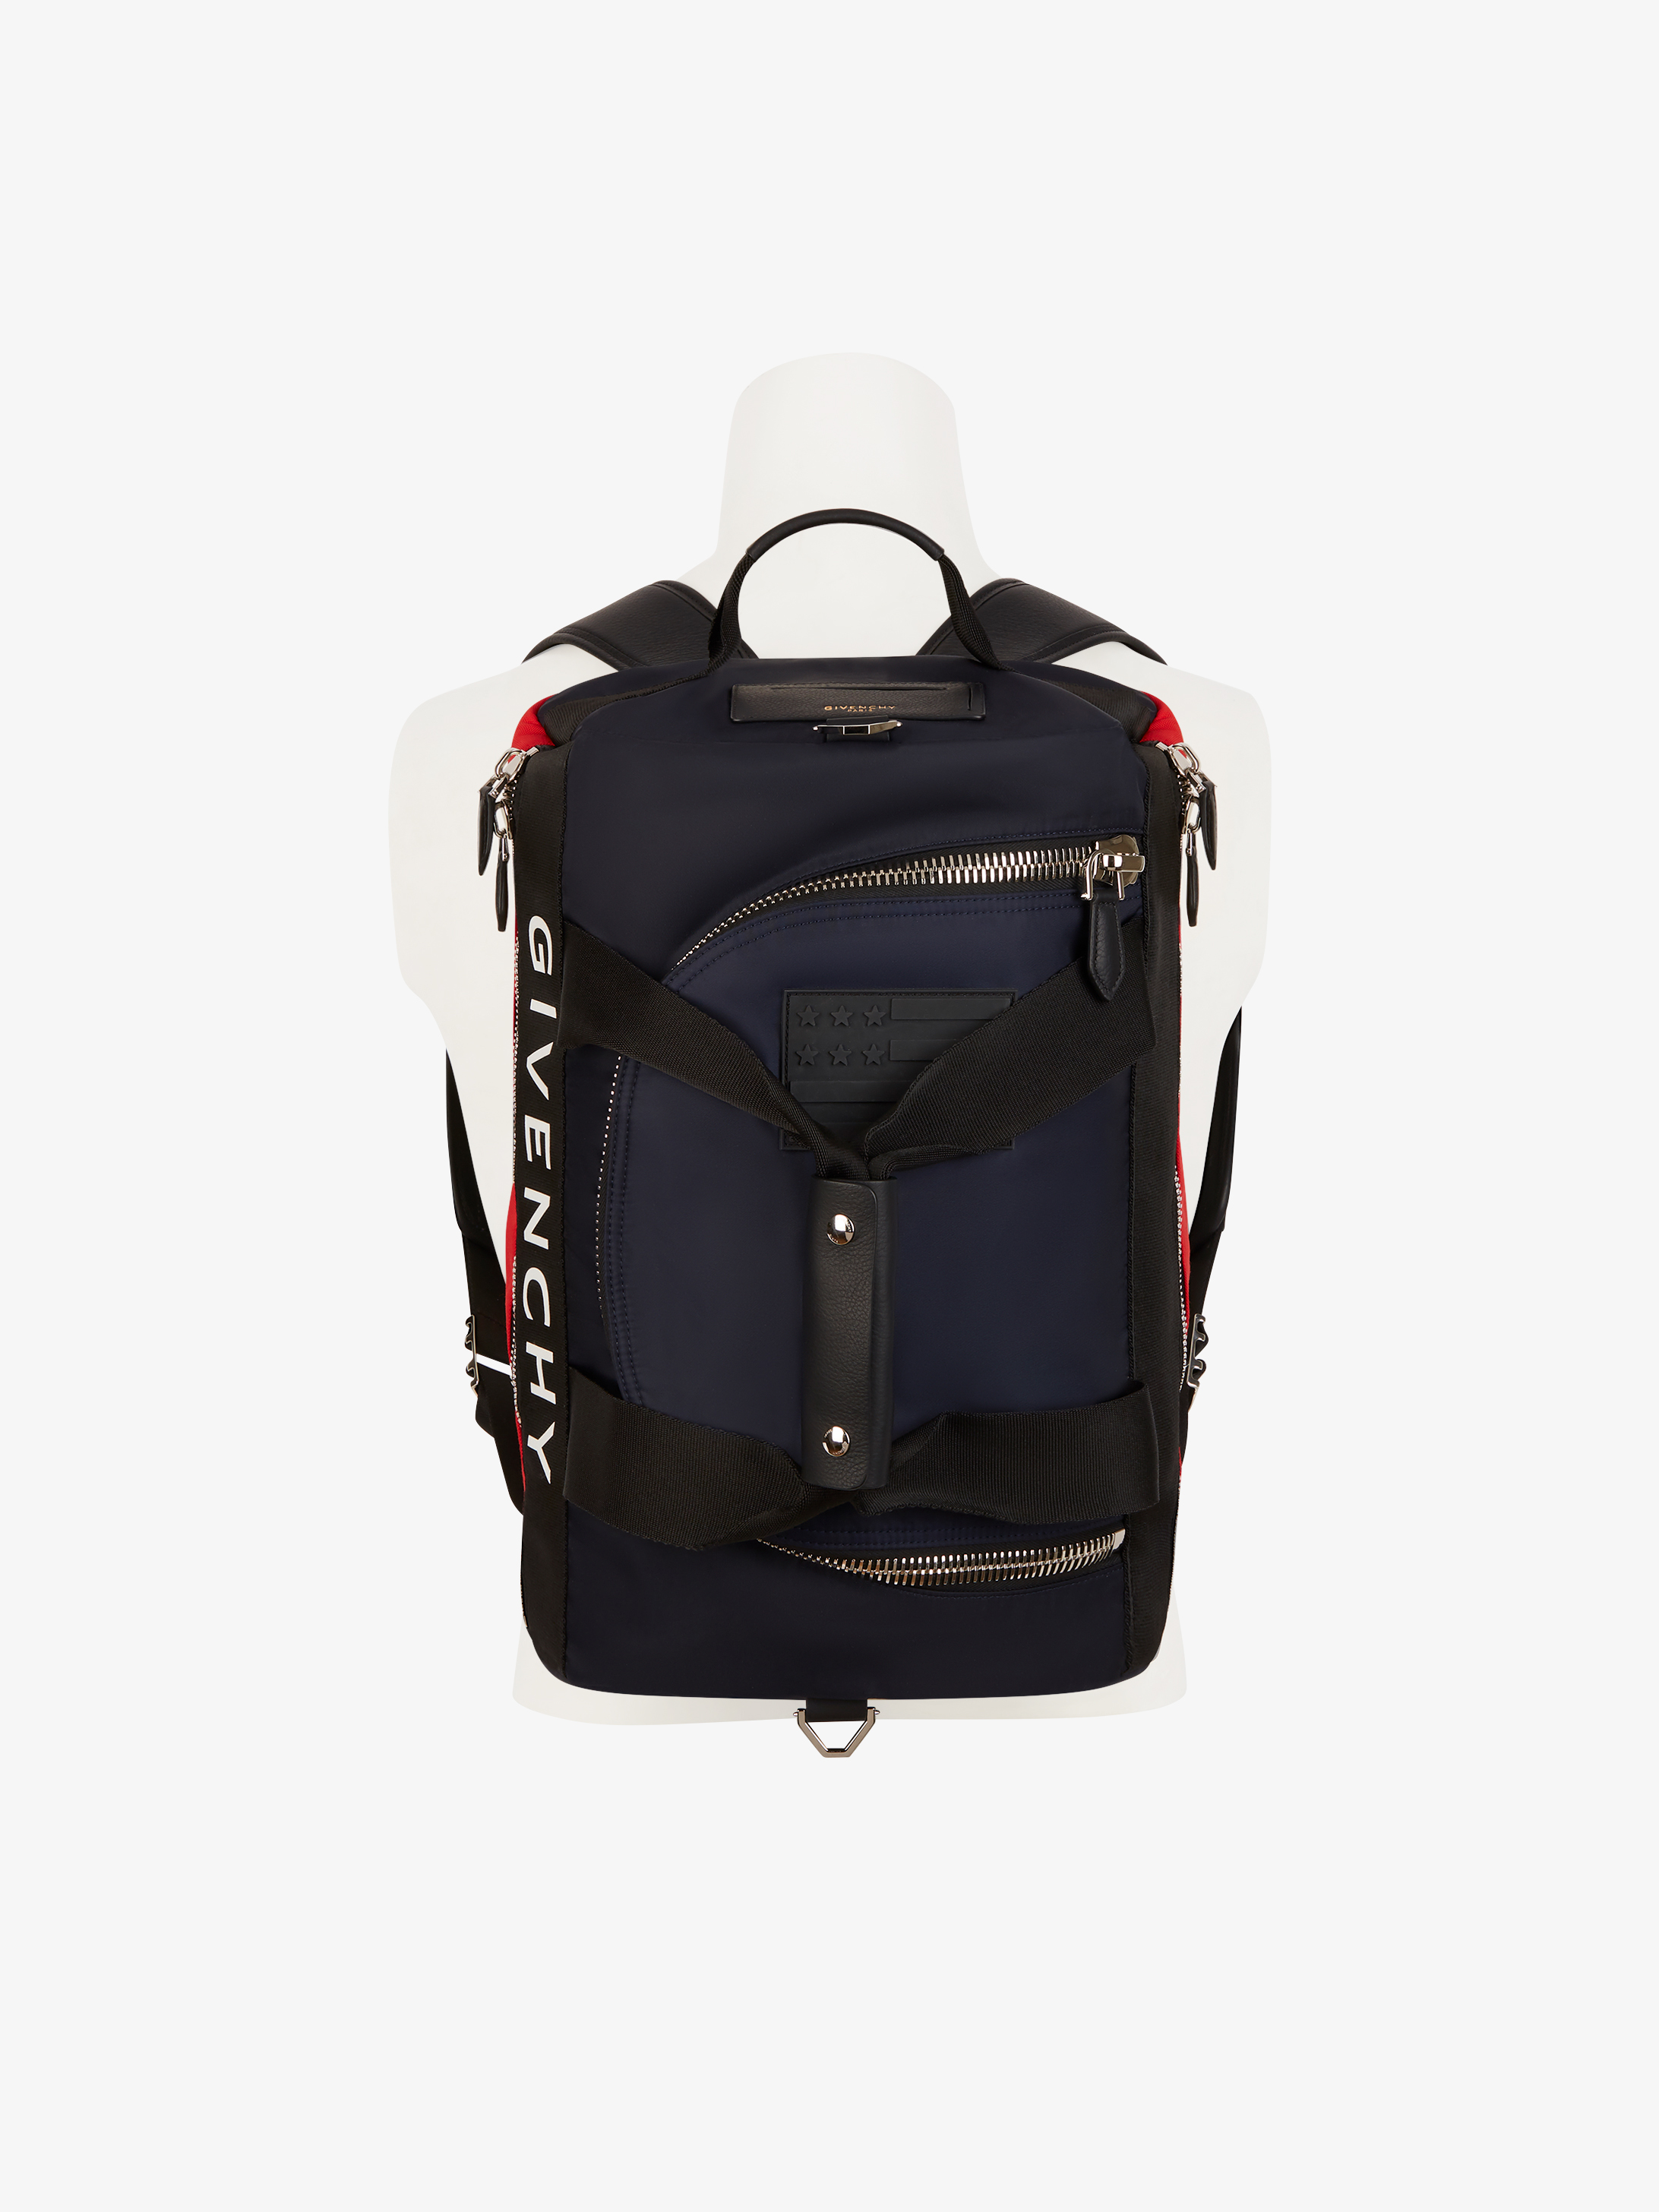 Backpack with GIVENCHY webbing band